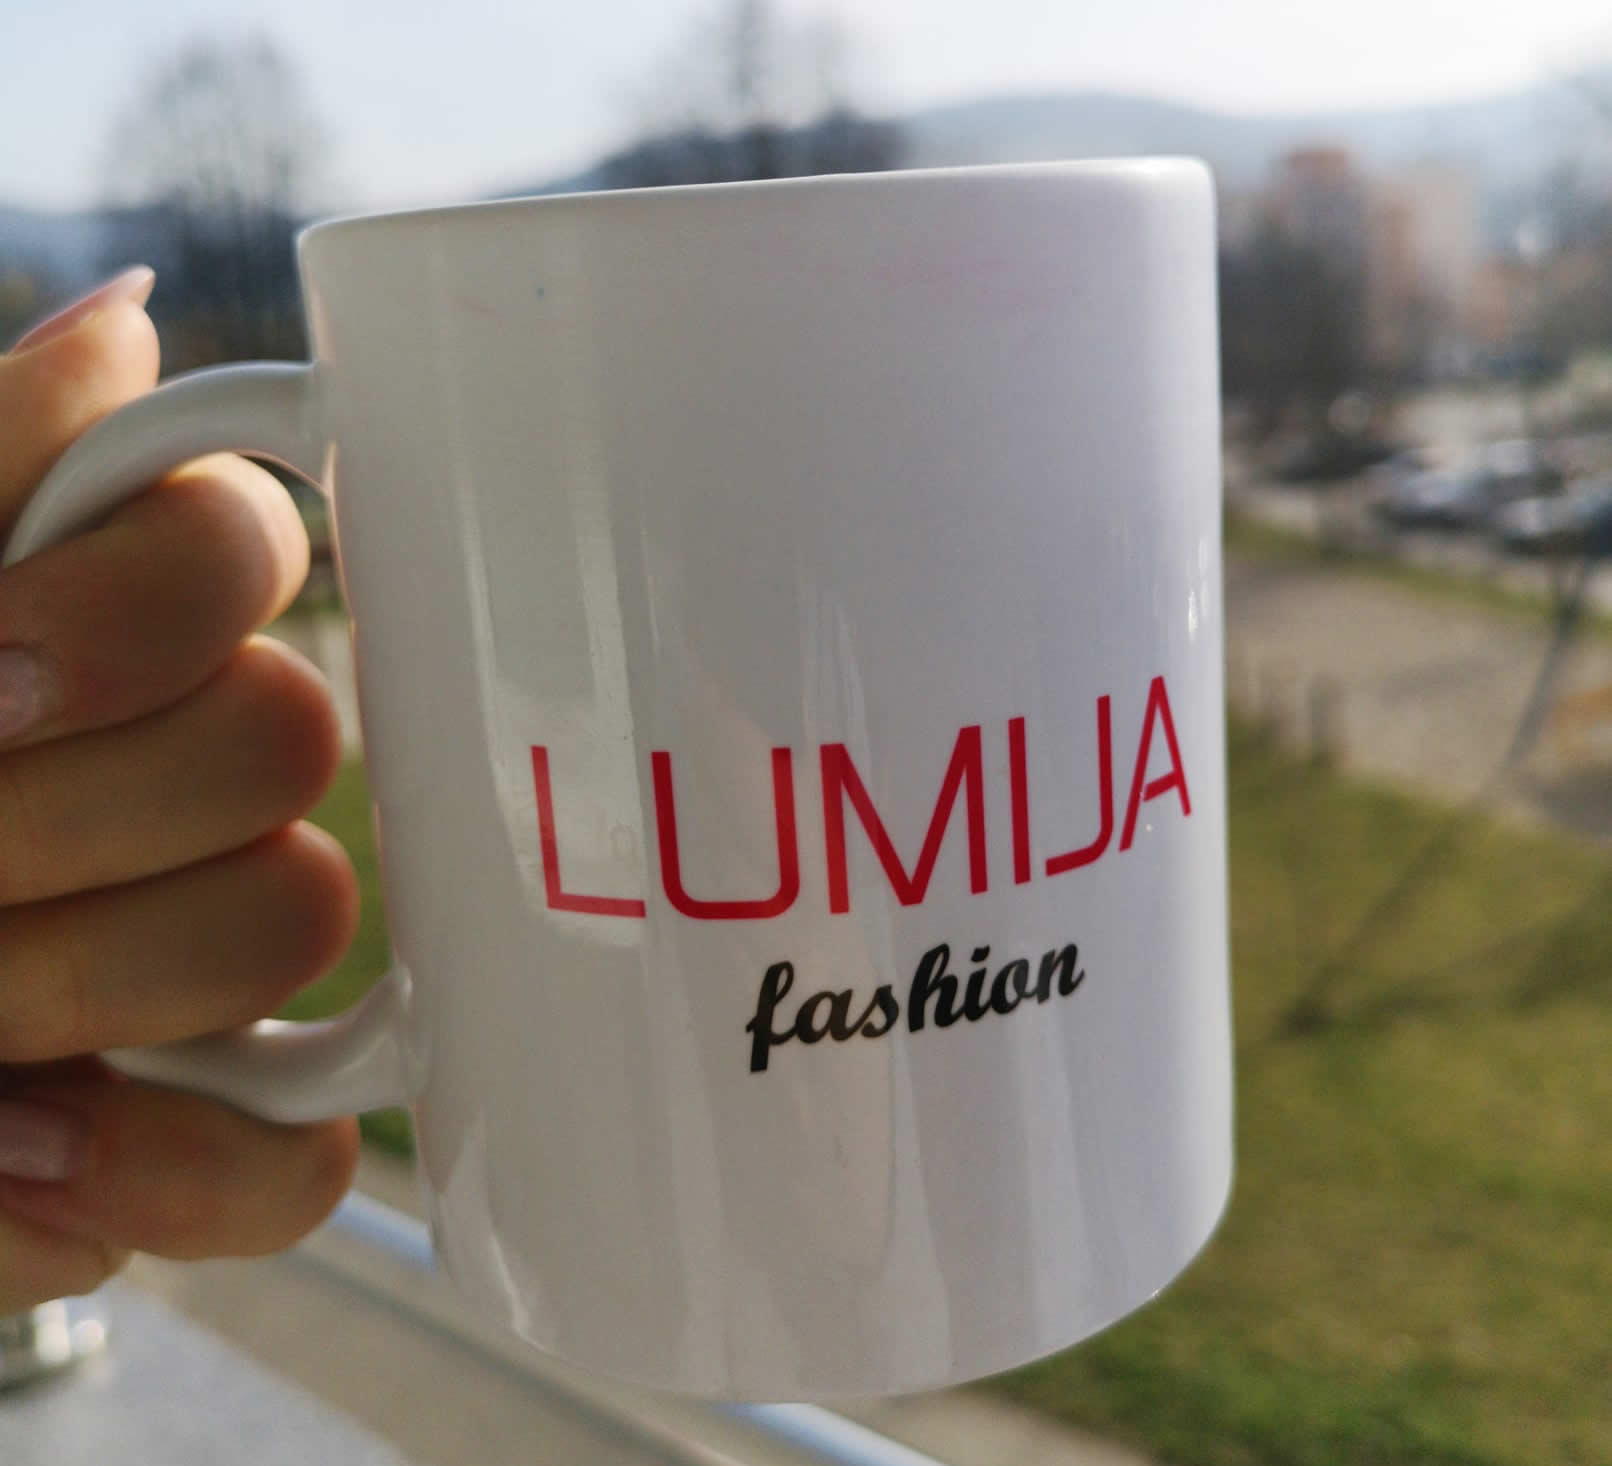 Lumija.Fashion hrnček